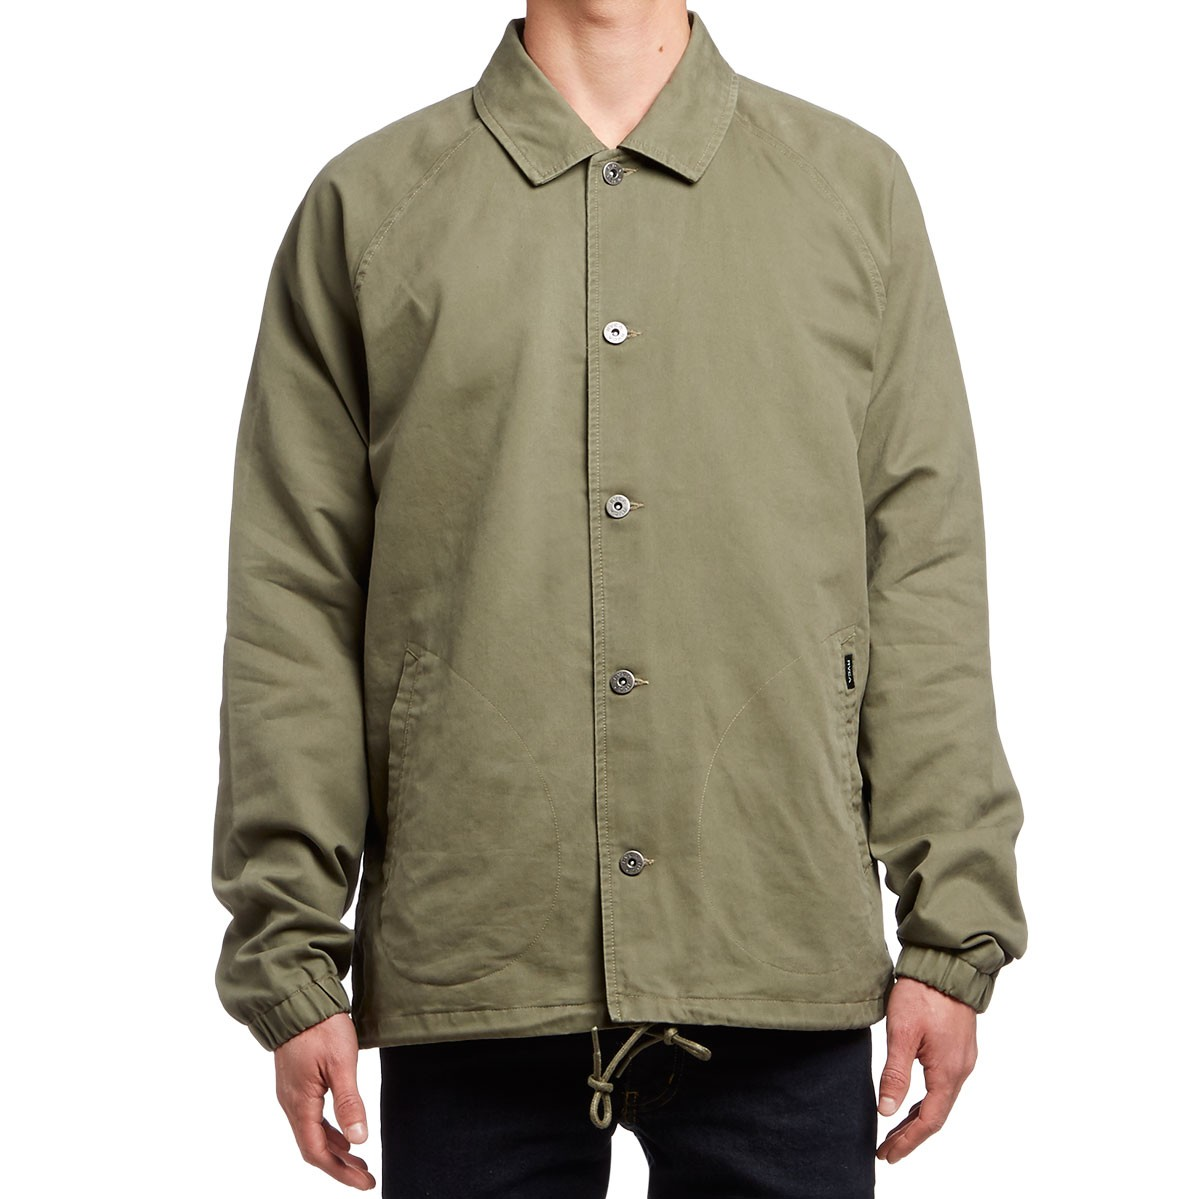 RVCA MVP Coaches Jacket - Leaf